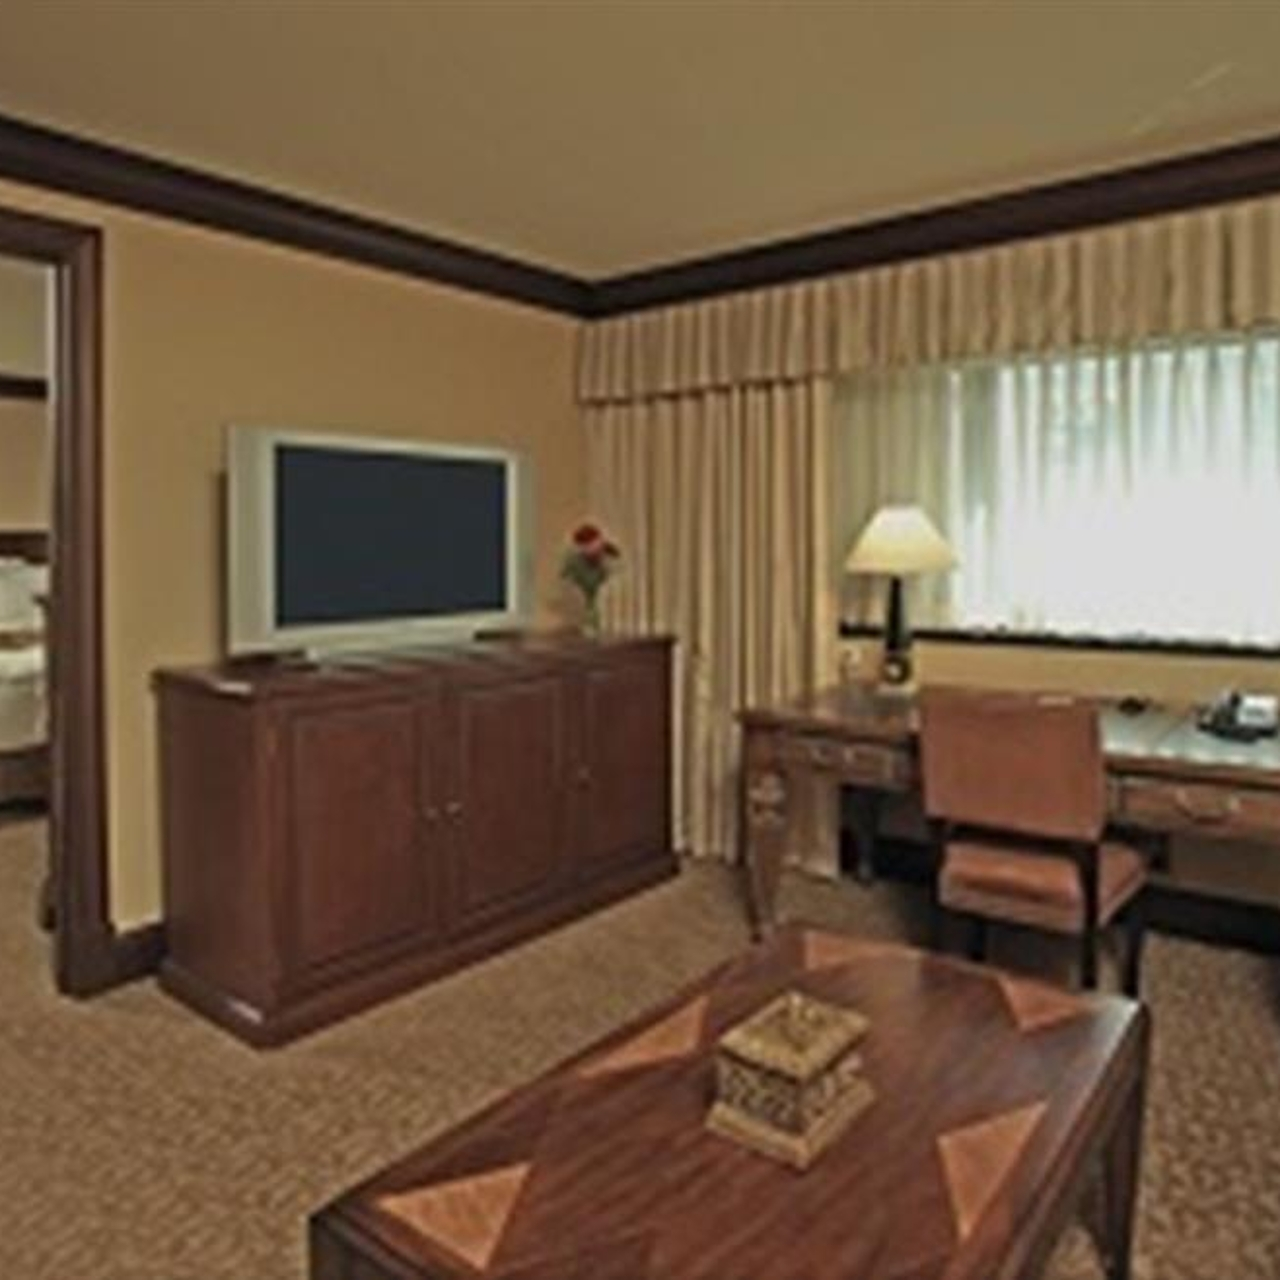 The Towers Kahler Grand Hotel 3 Hrs Star Hotel In Rochester Minnesota